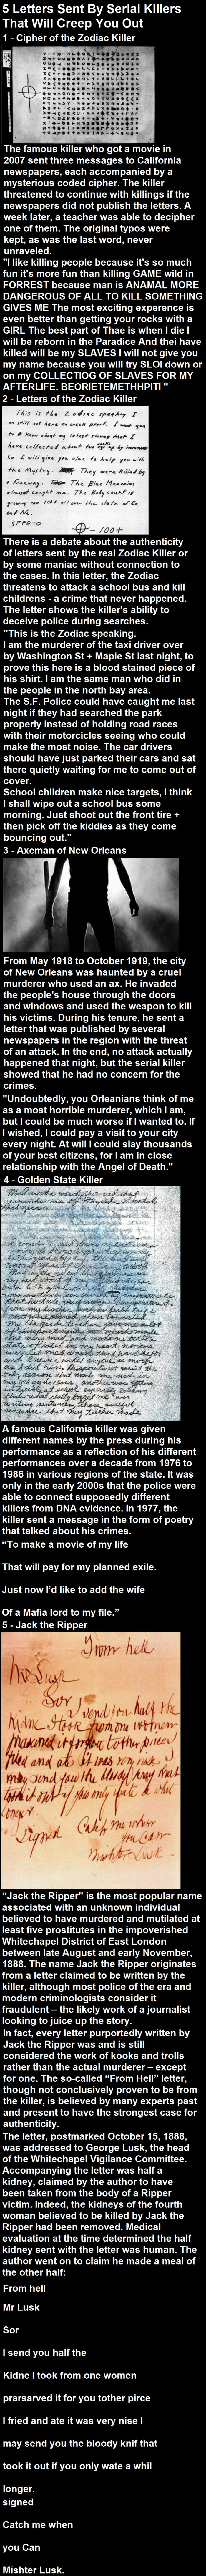 Creepy letters sent by serial killers